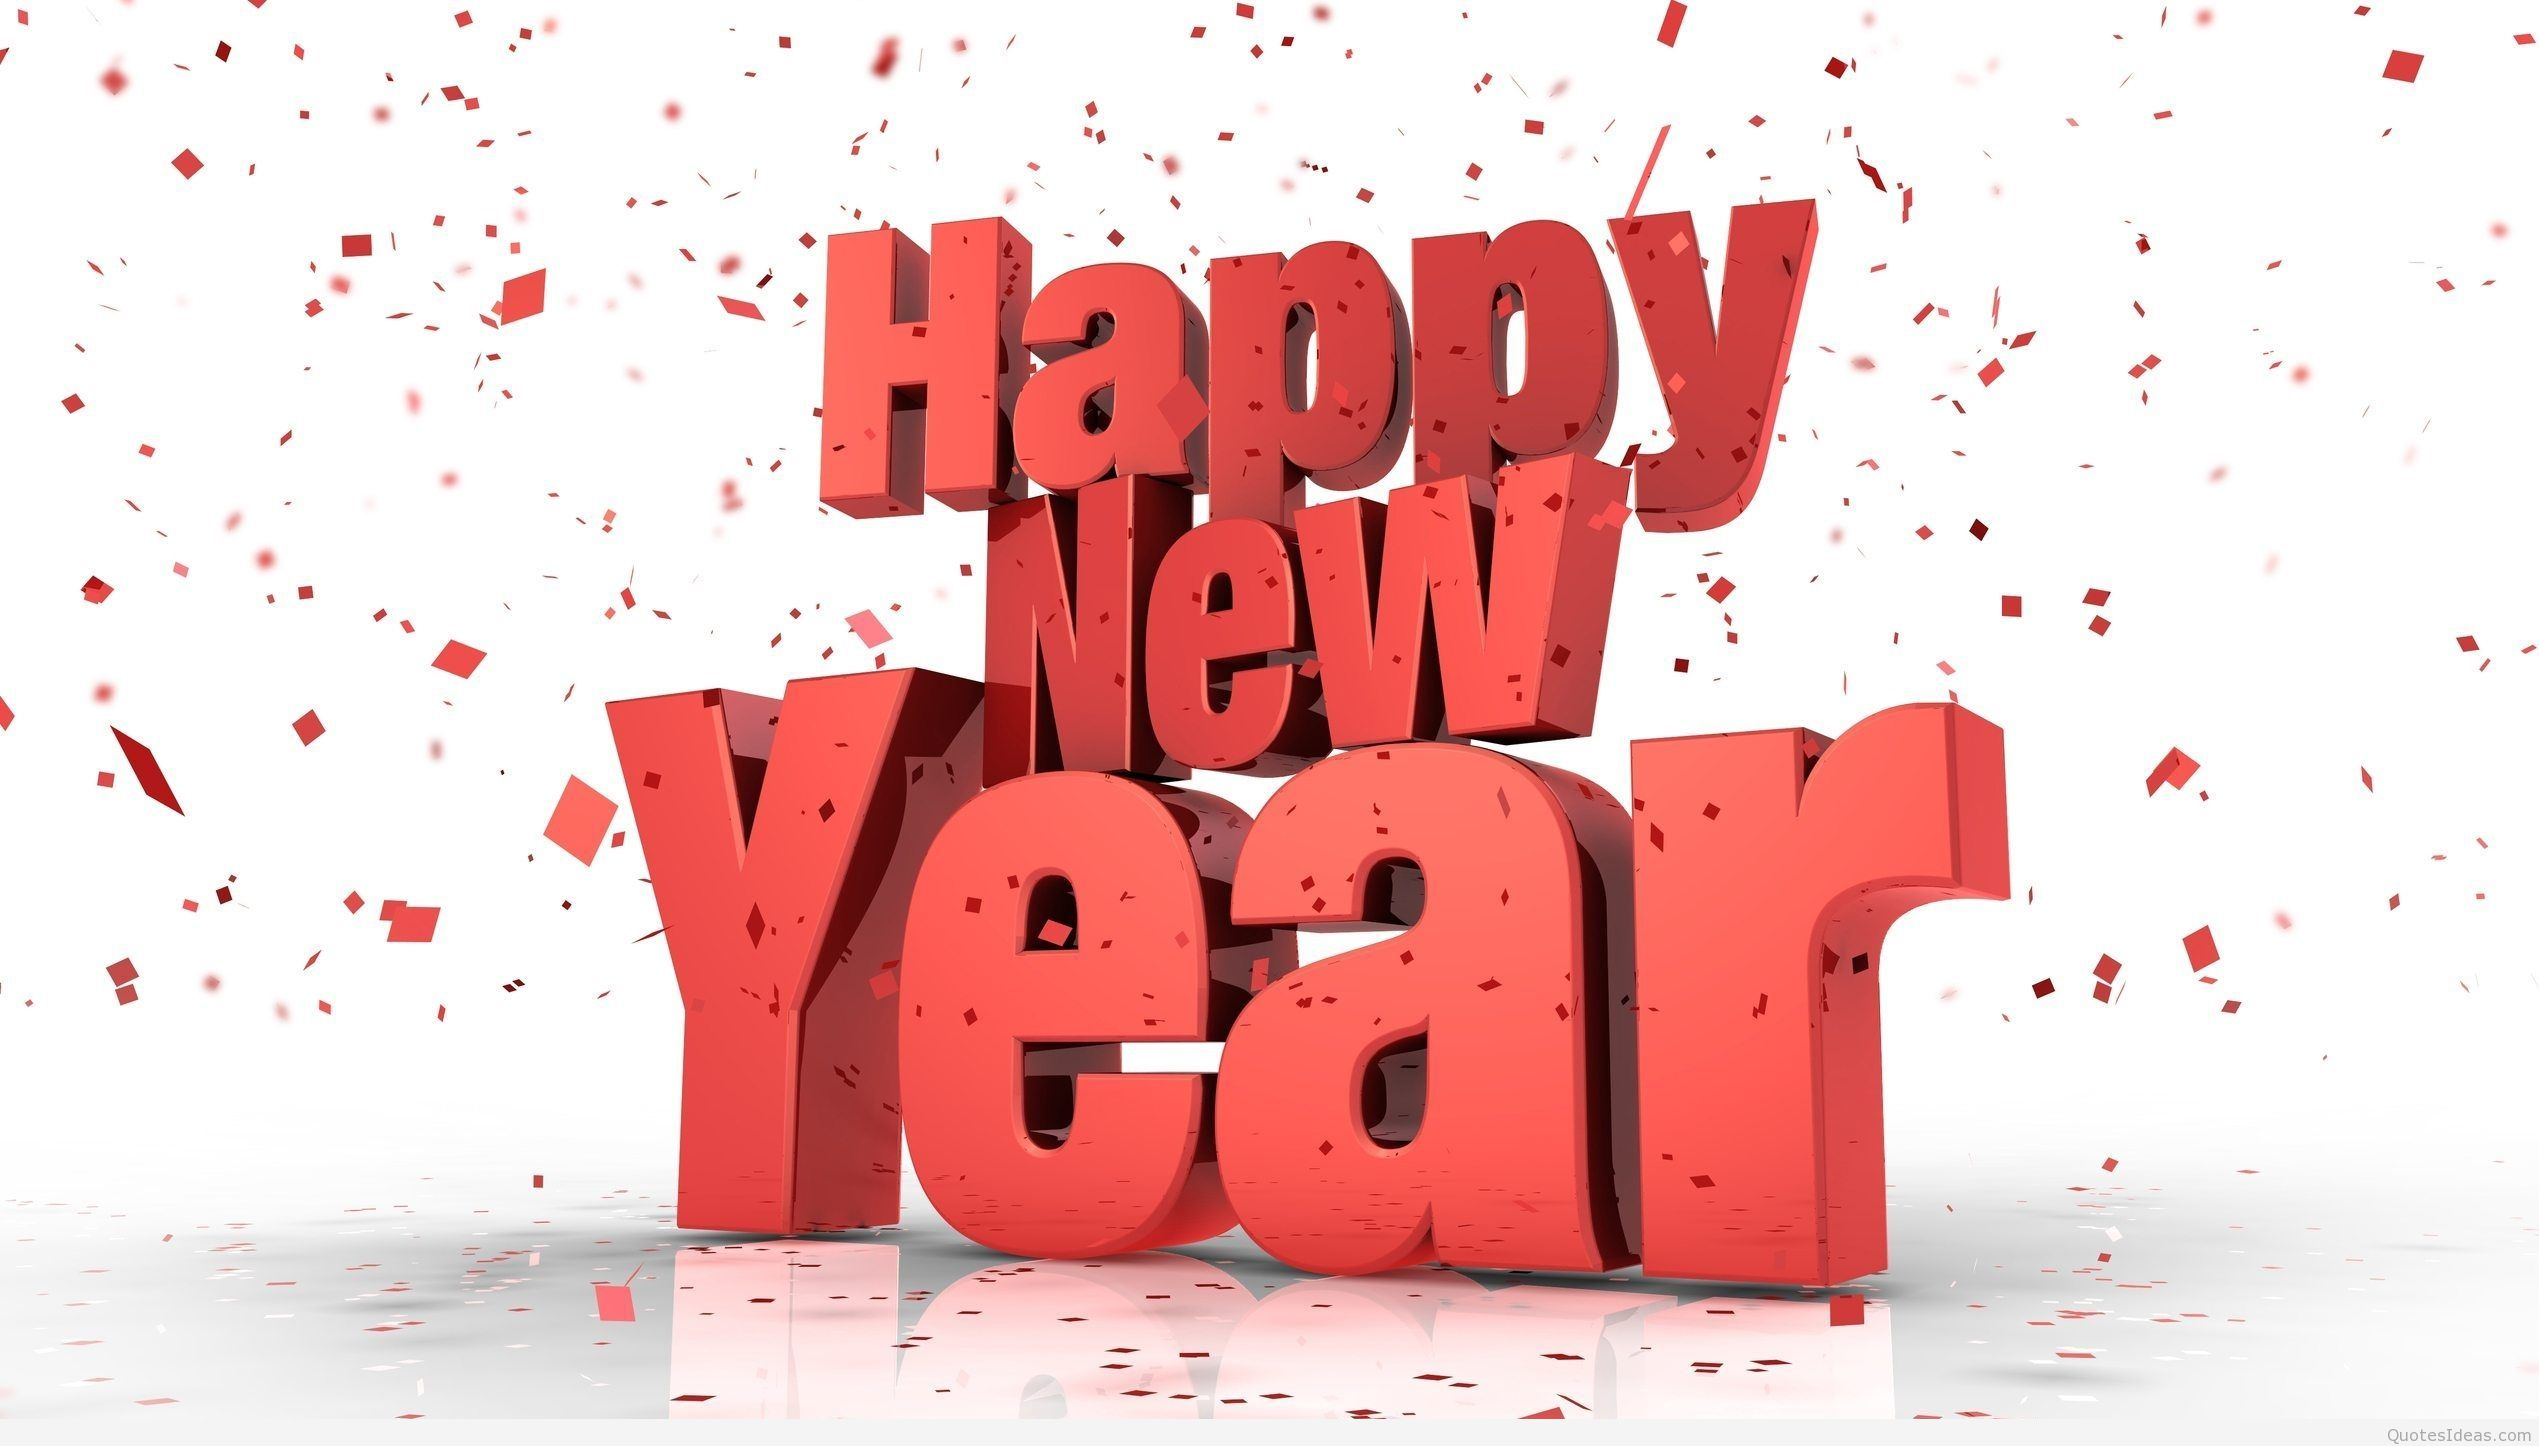 Happy New Year 2016 Hd Images Wallpapers Free Download 12 2222222